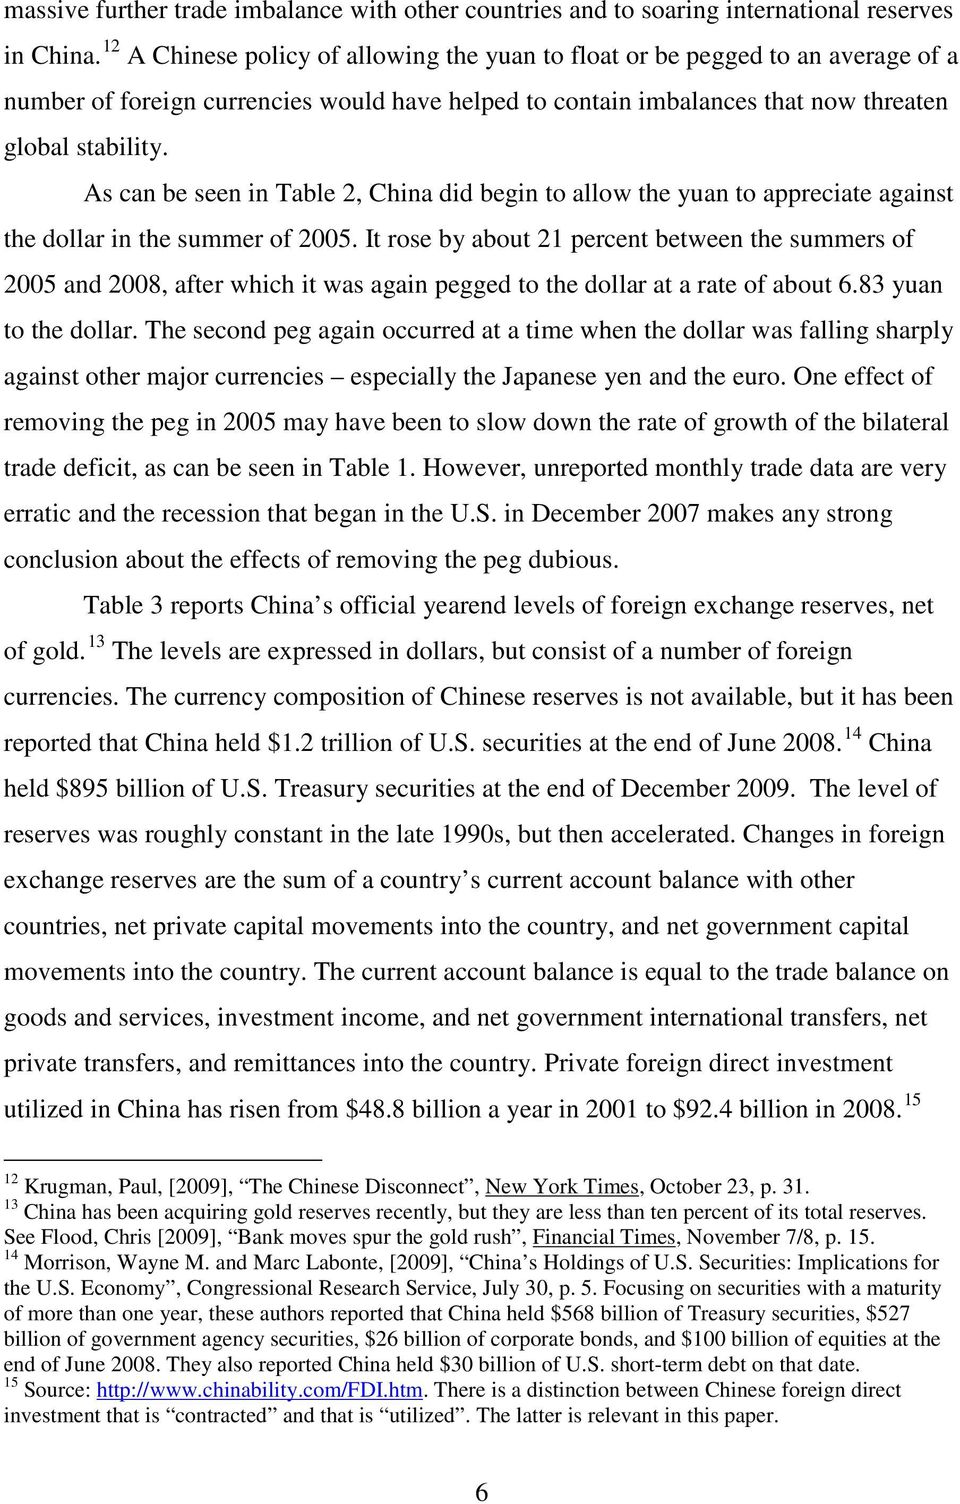 As can be seen in Table 2, China did begin to allow the yuan to appreciate against the dollar in the summer of 2005.